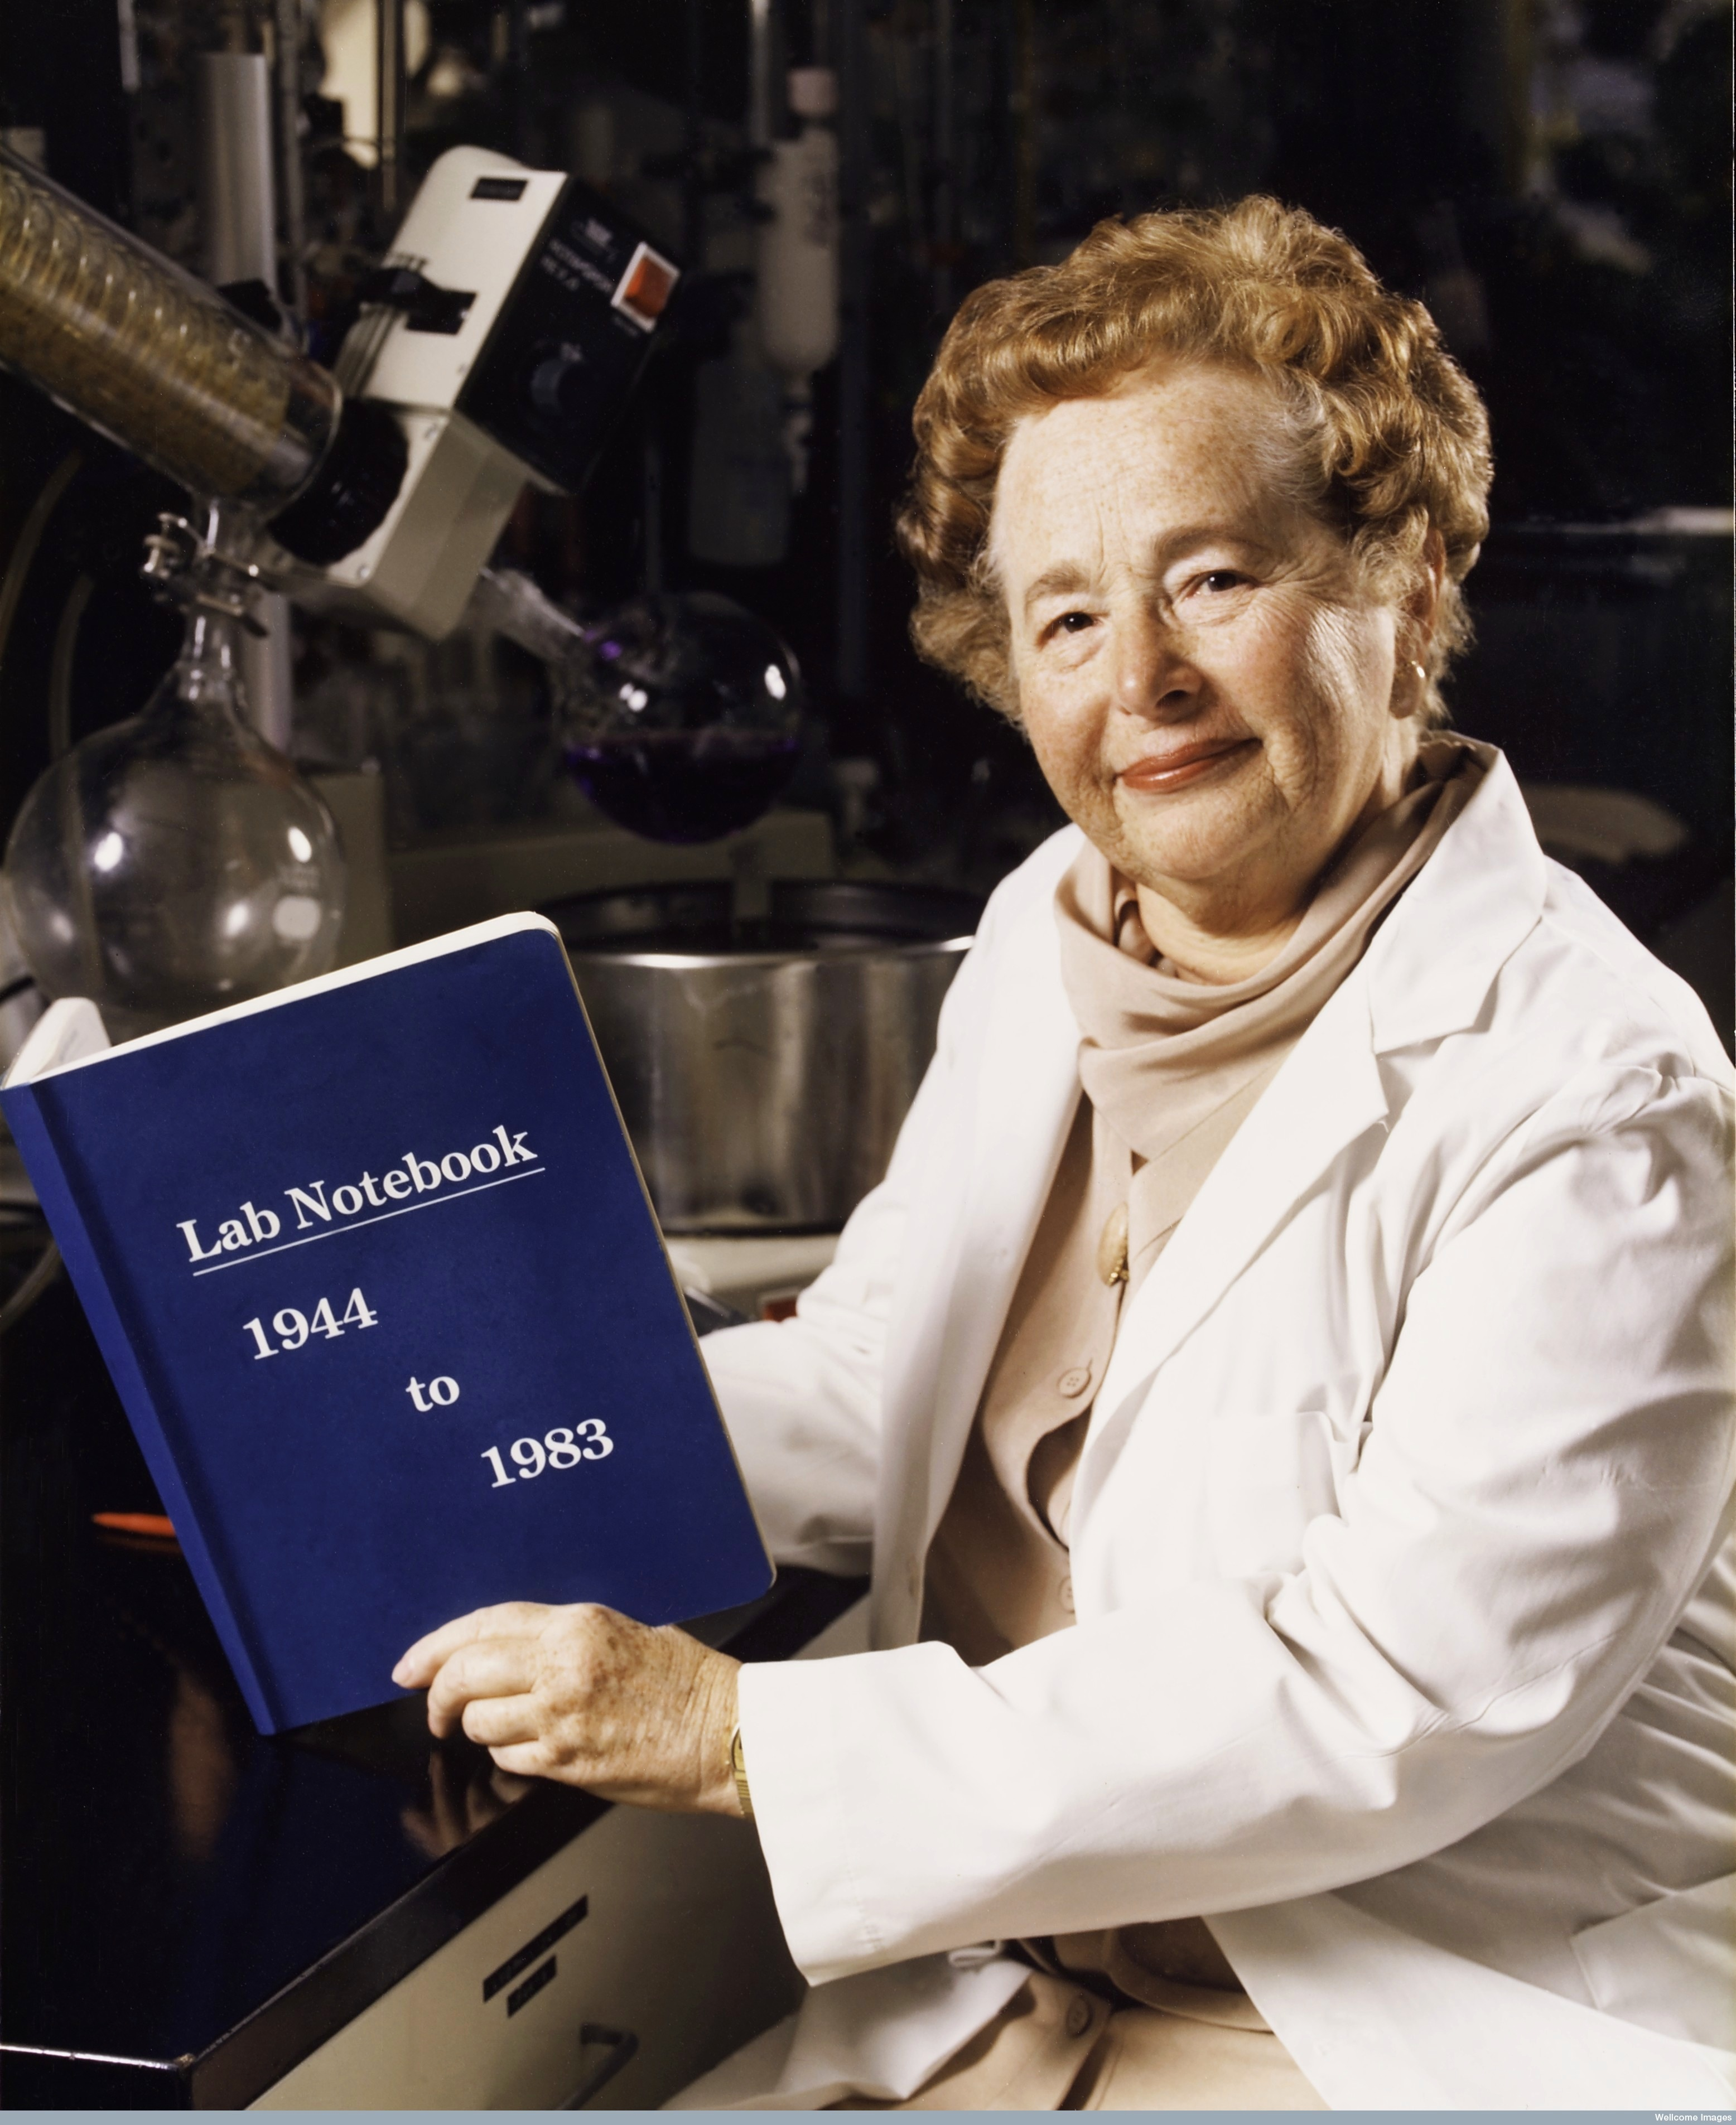 gertrude b elion Her parents were robert elion (dentist) and bertha cohen elion (housewife) gertrude had one younger brother, herbert elion, six years apart from her her mother was from poland and her father was from lithuania.